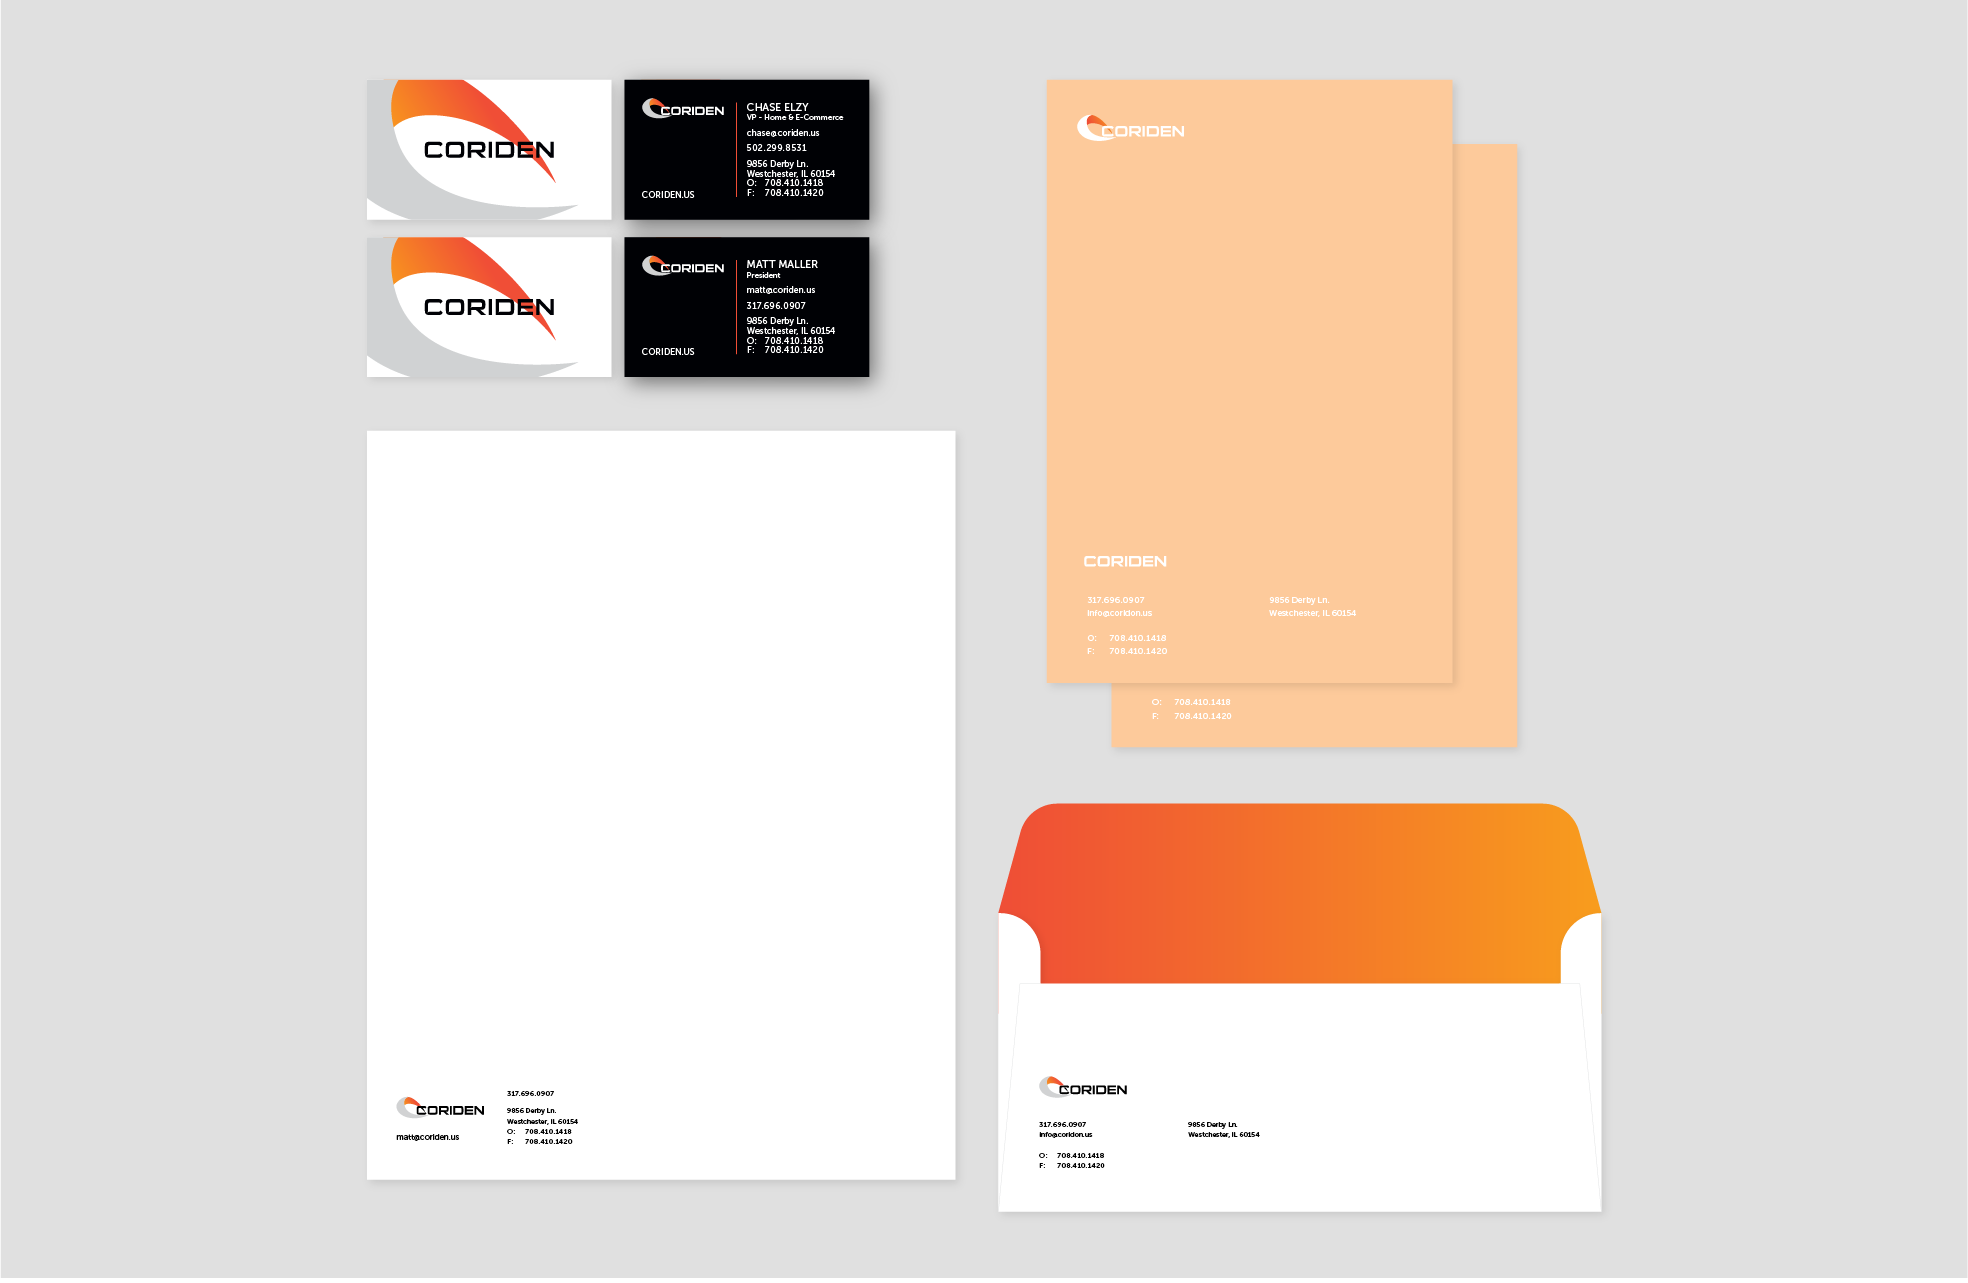 1Print_Collatoral_Business_Identity